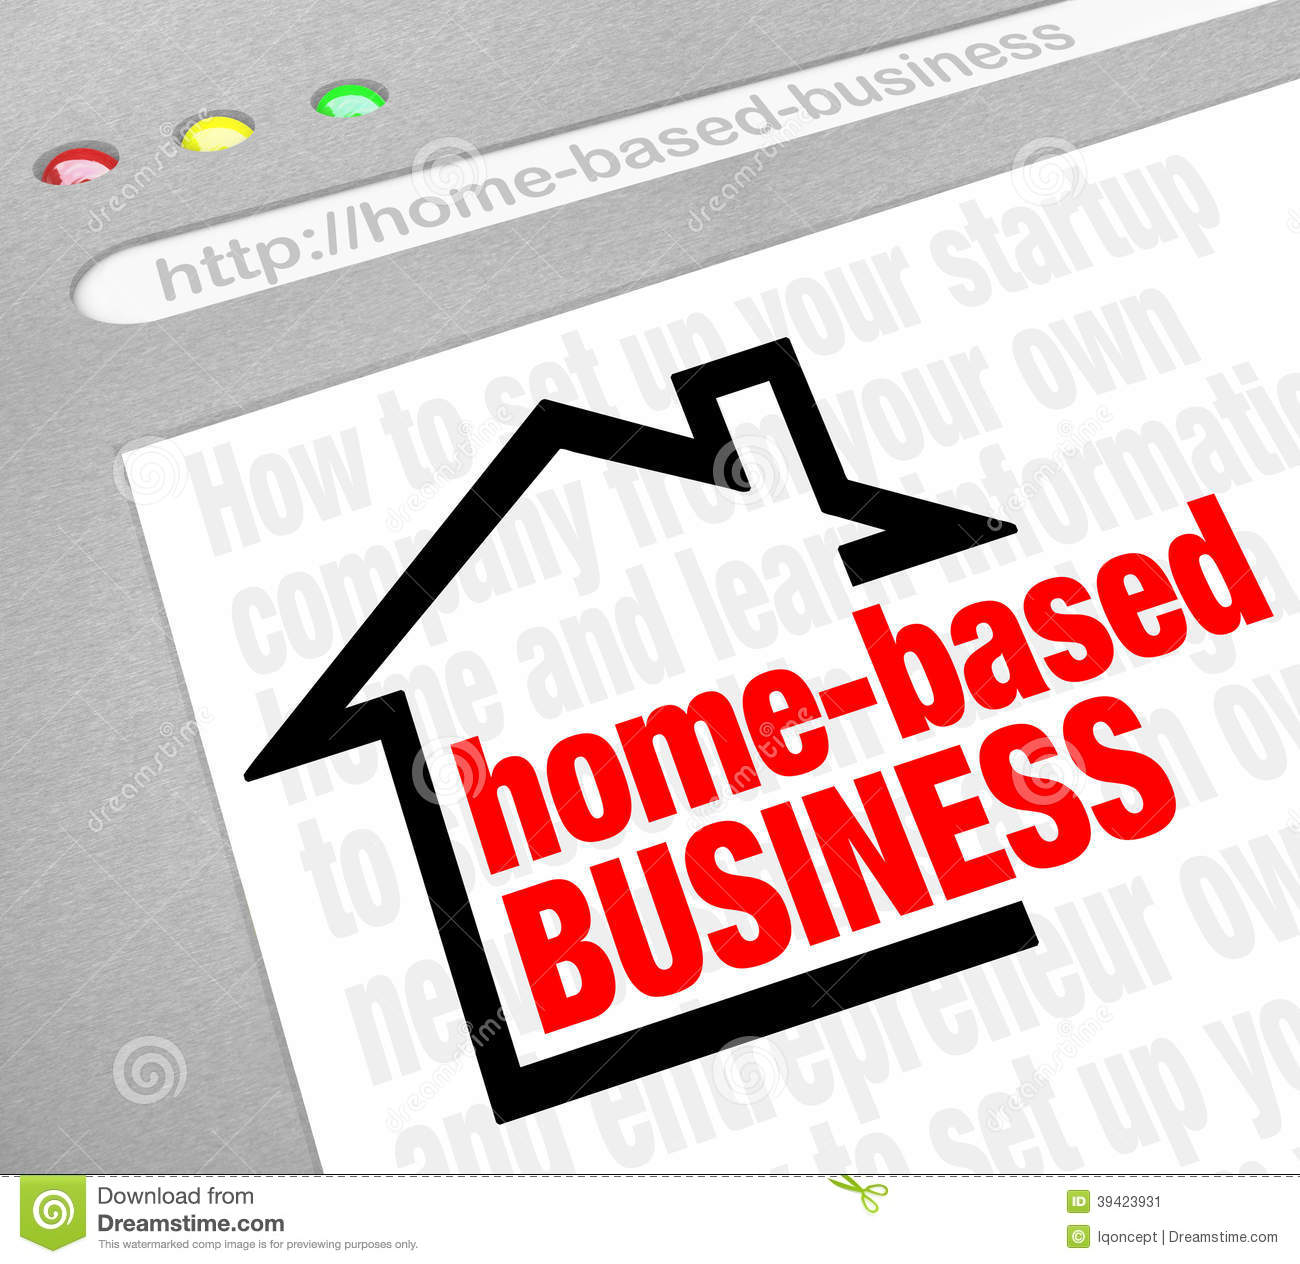 home-based-business-advice-information-t